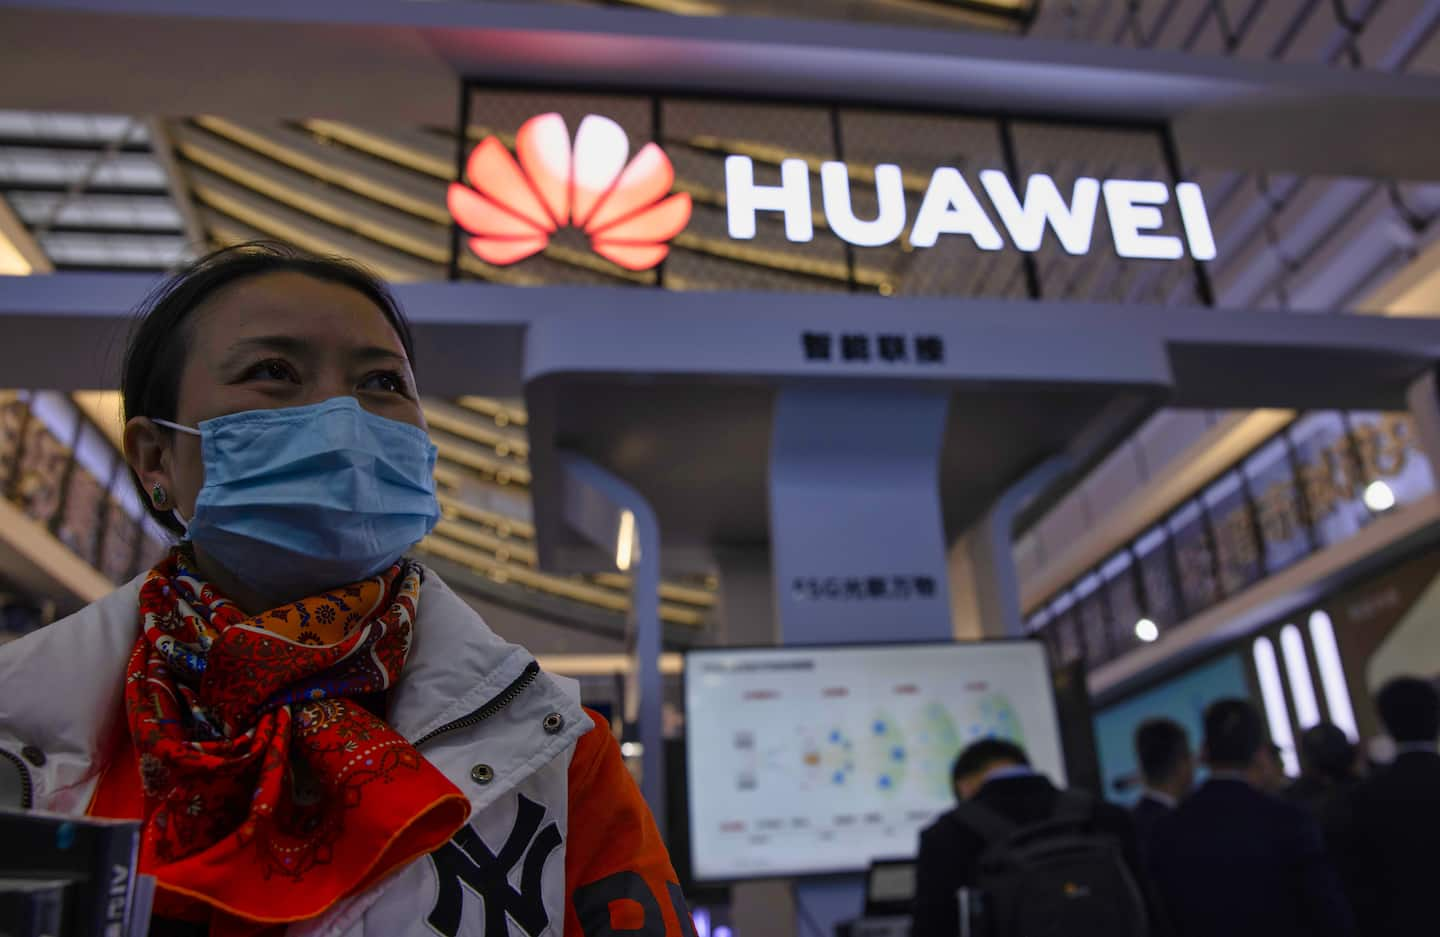 'Uighur alarm' wasn't only Huawei product touted to identify ethnicity